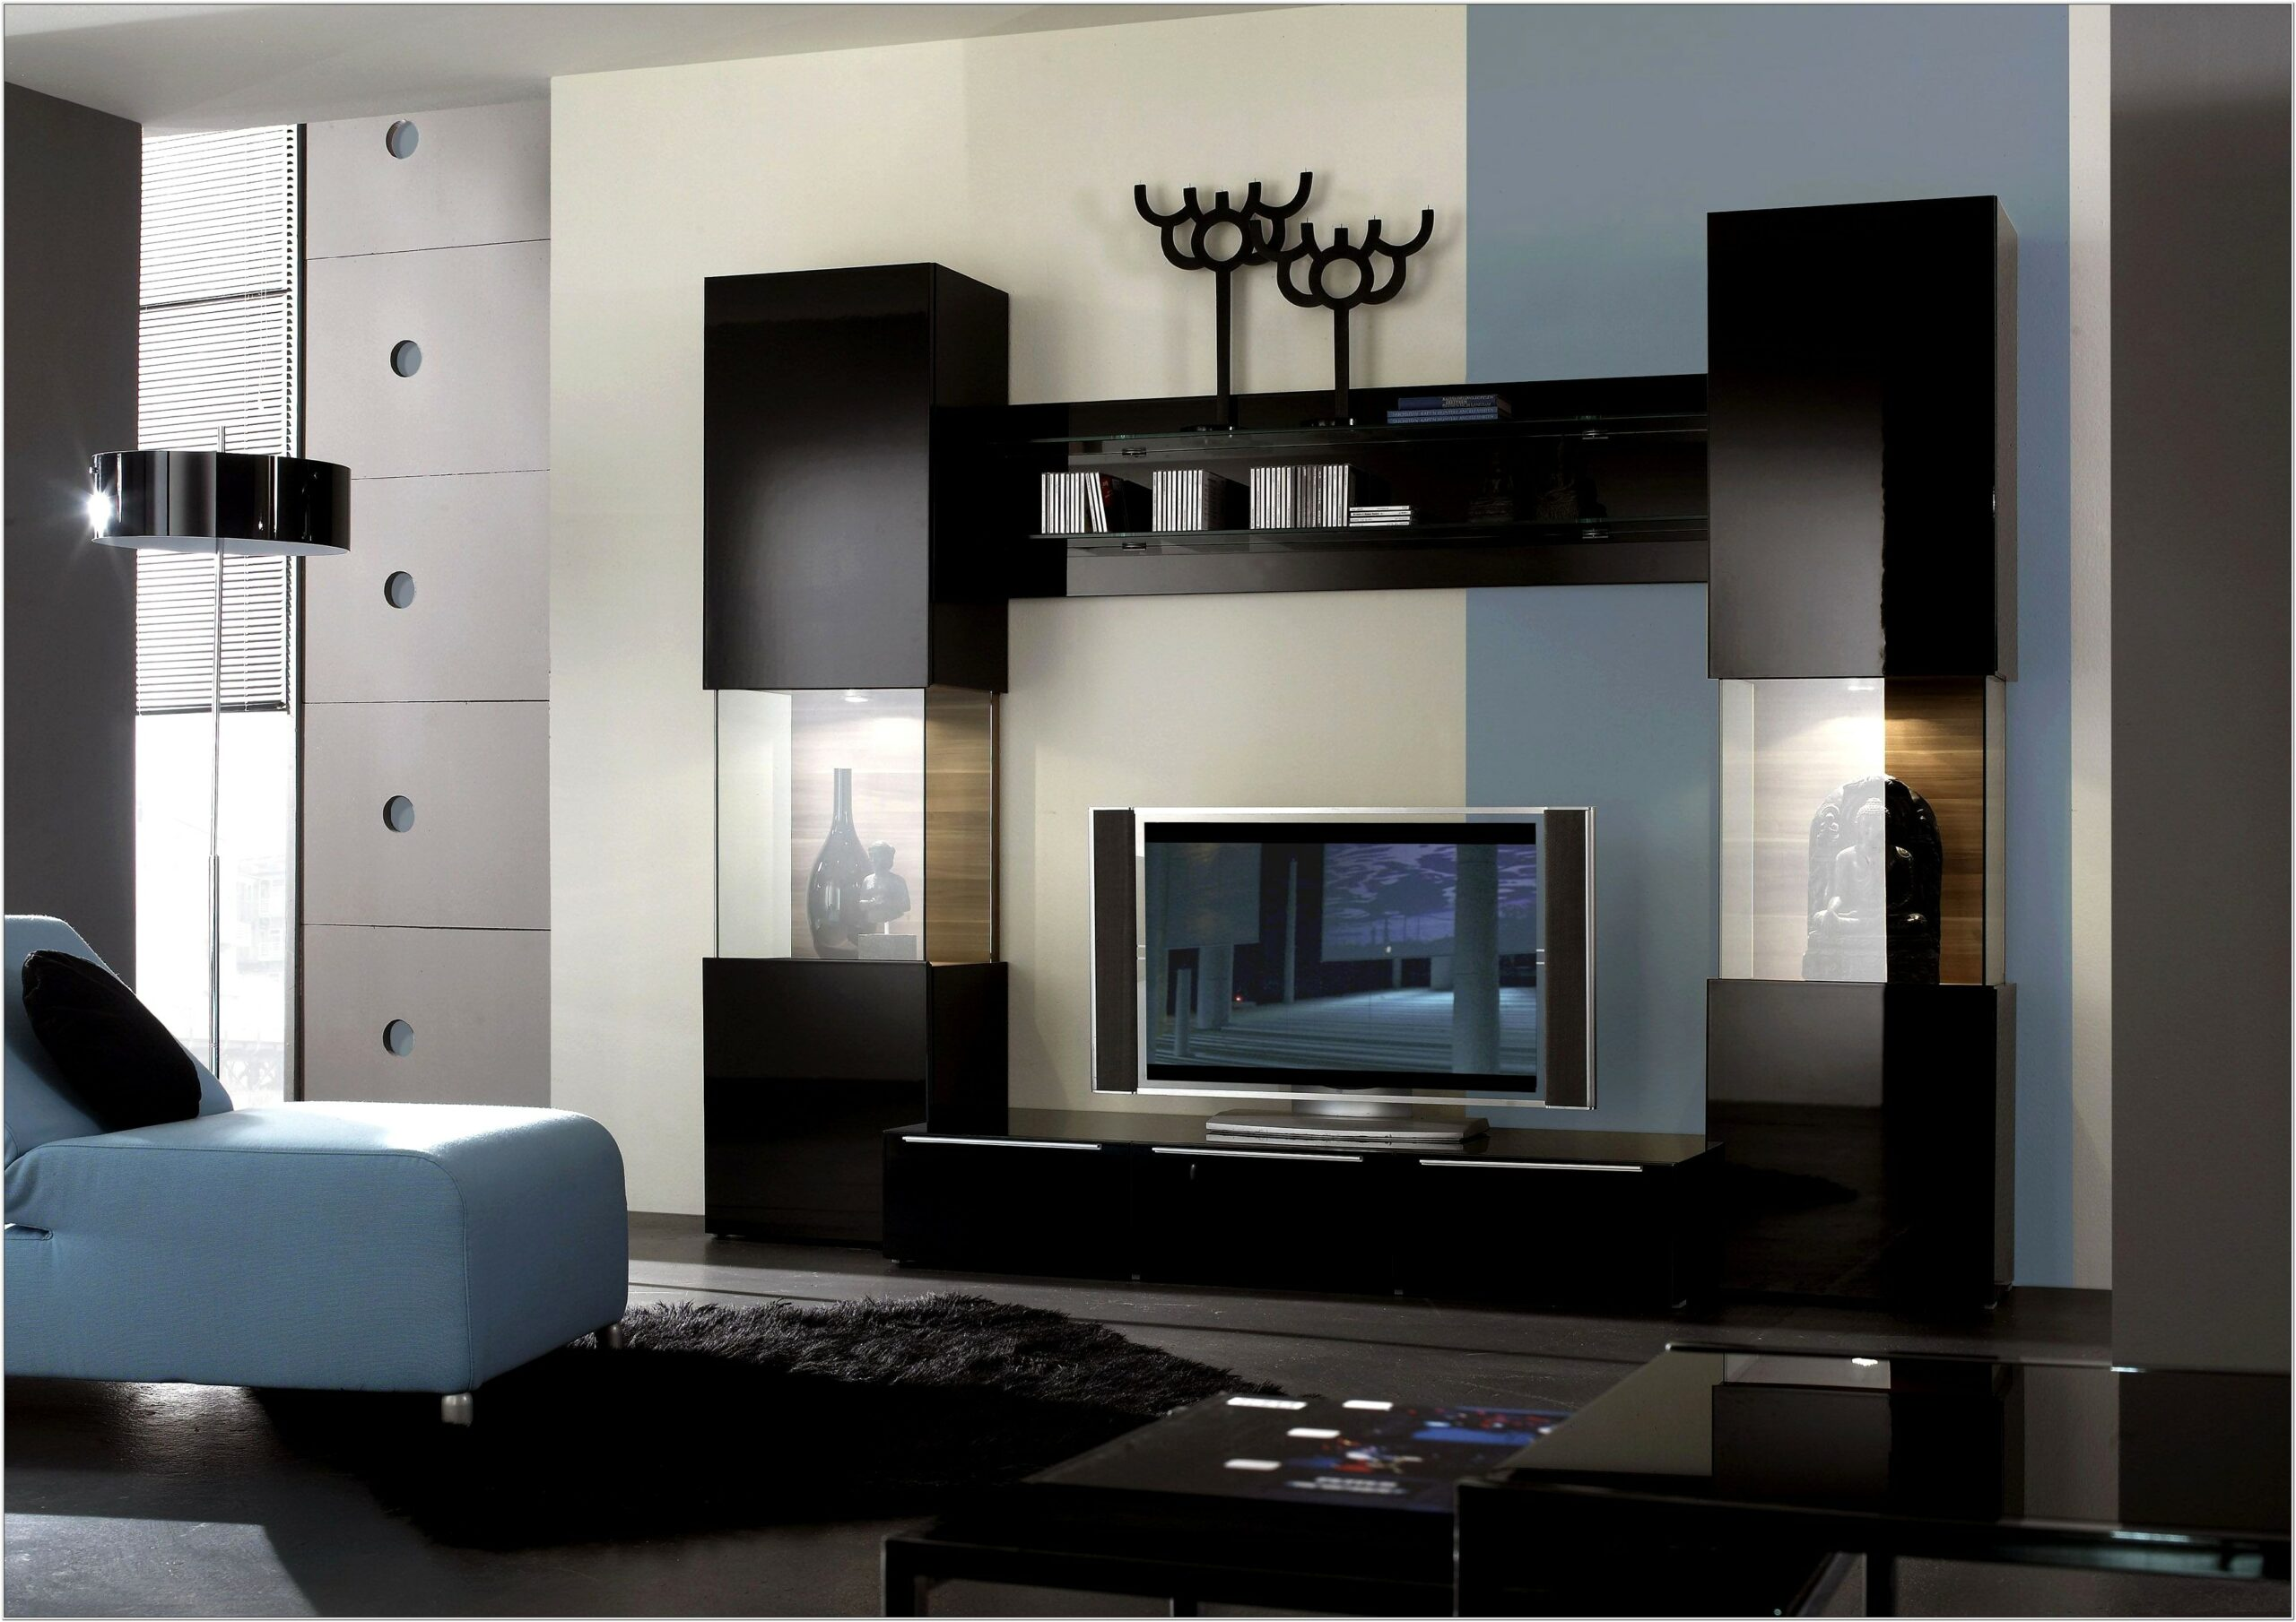 Modern Tv Wall Unit Designs For Living Room Modern Tv Wall Unit Designs For Living Room Cabinet Design Living Room Cabinet Design For Small Living Room20 3508 X 2474